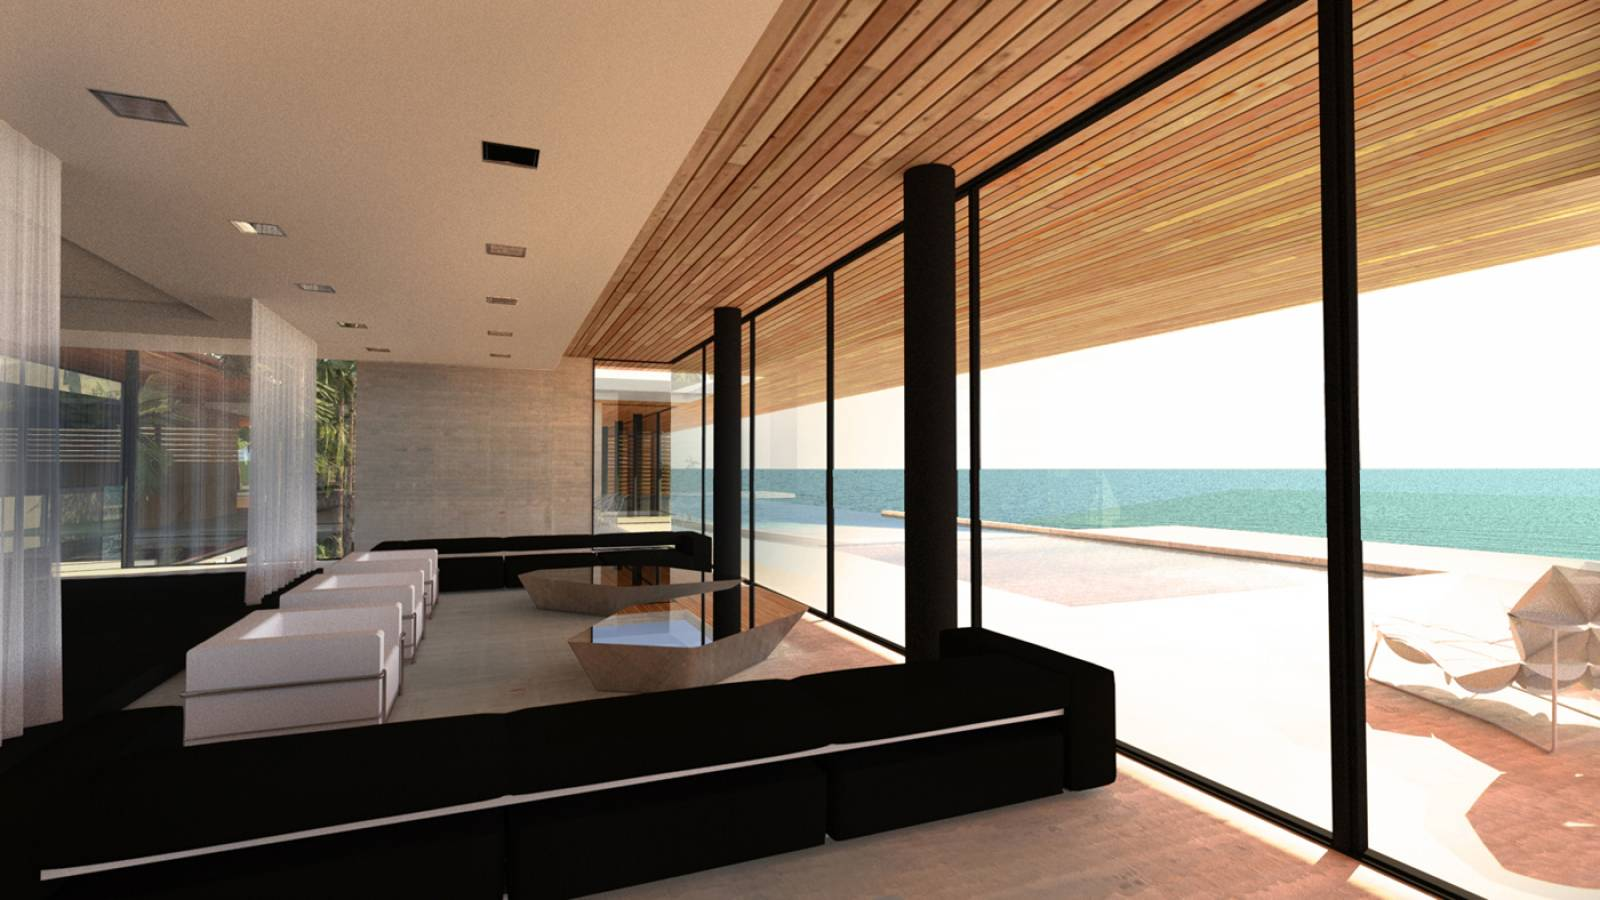 Villa design d in florida united states architecte a2 sb for Decor villa interieur